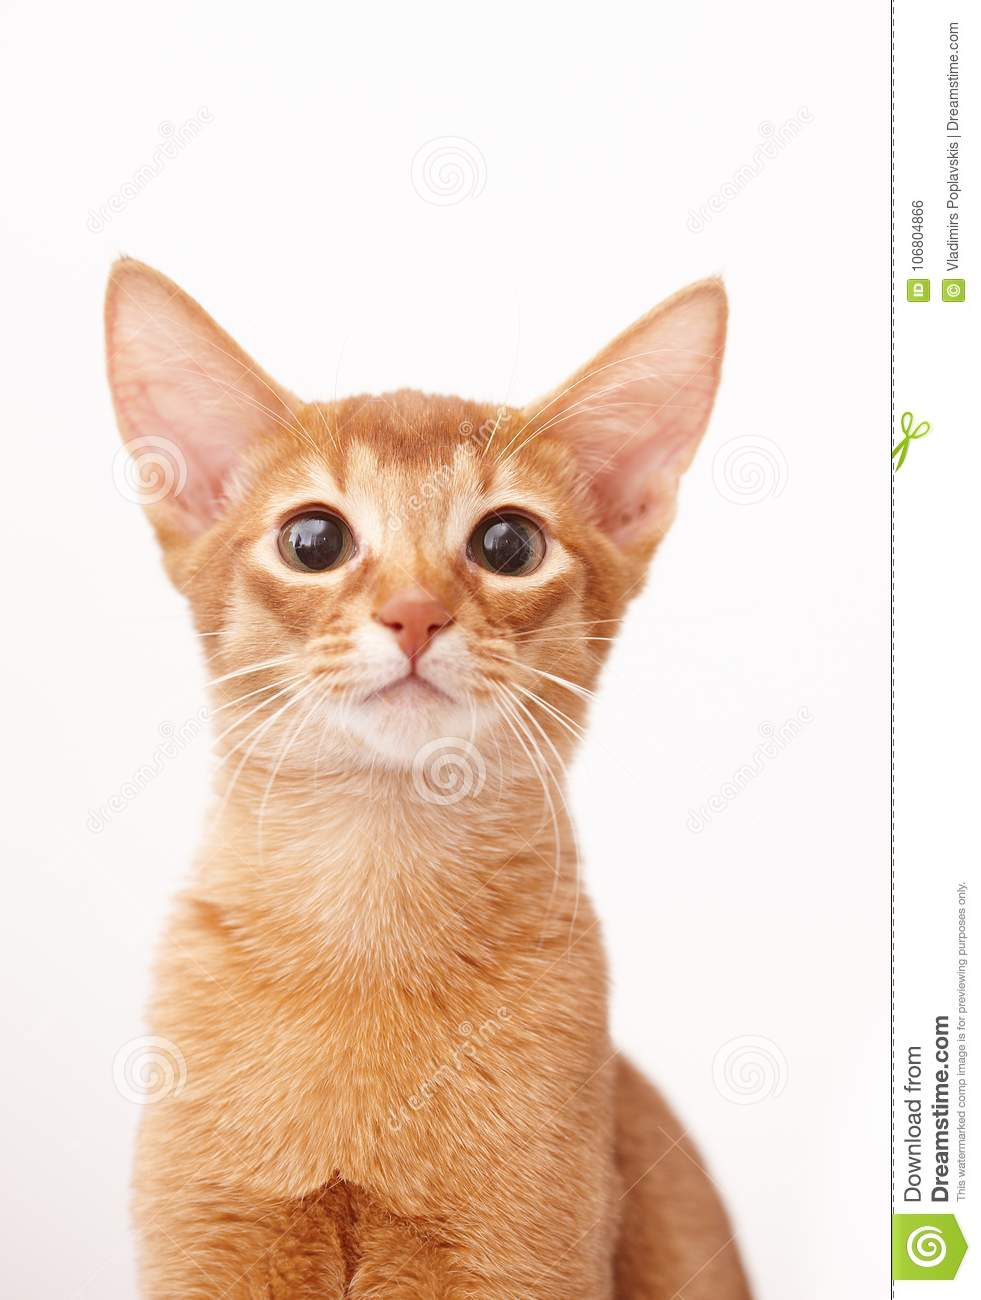 Download Playful Cute Little Red Cat Stock Photo Image Of Domestic Kitten